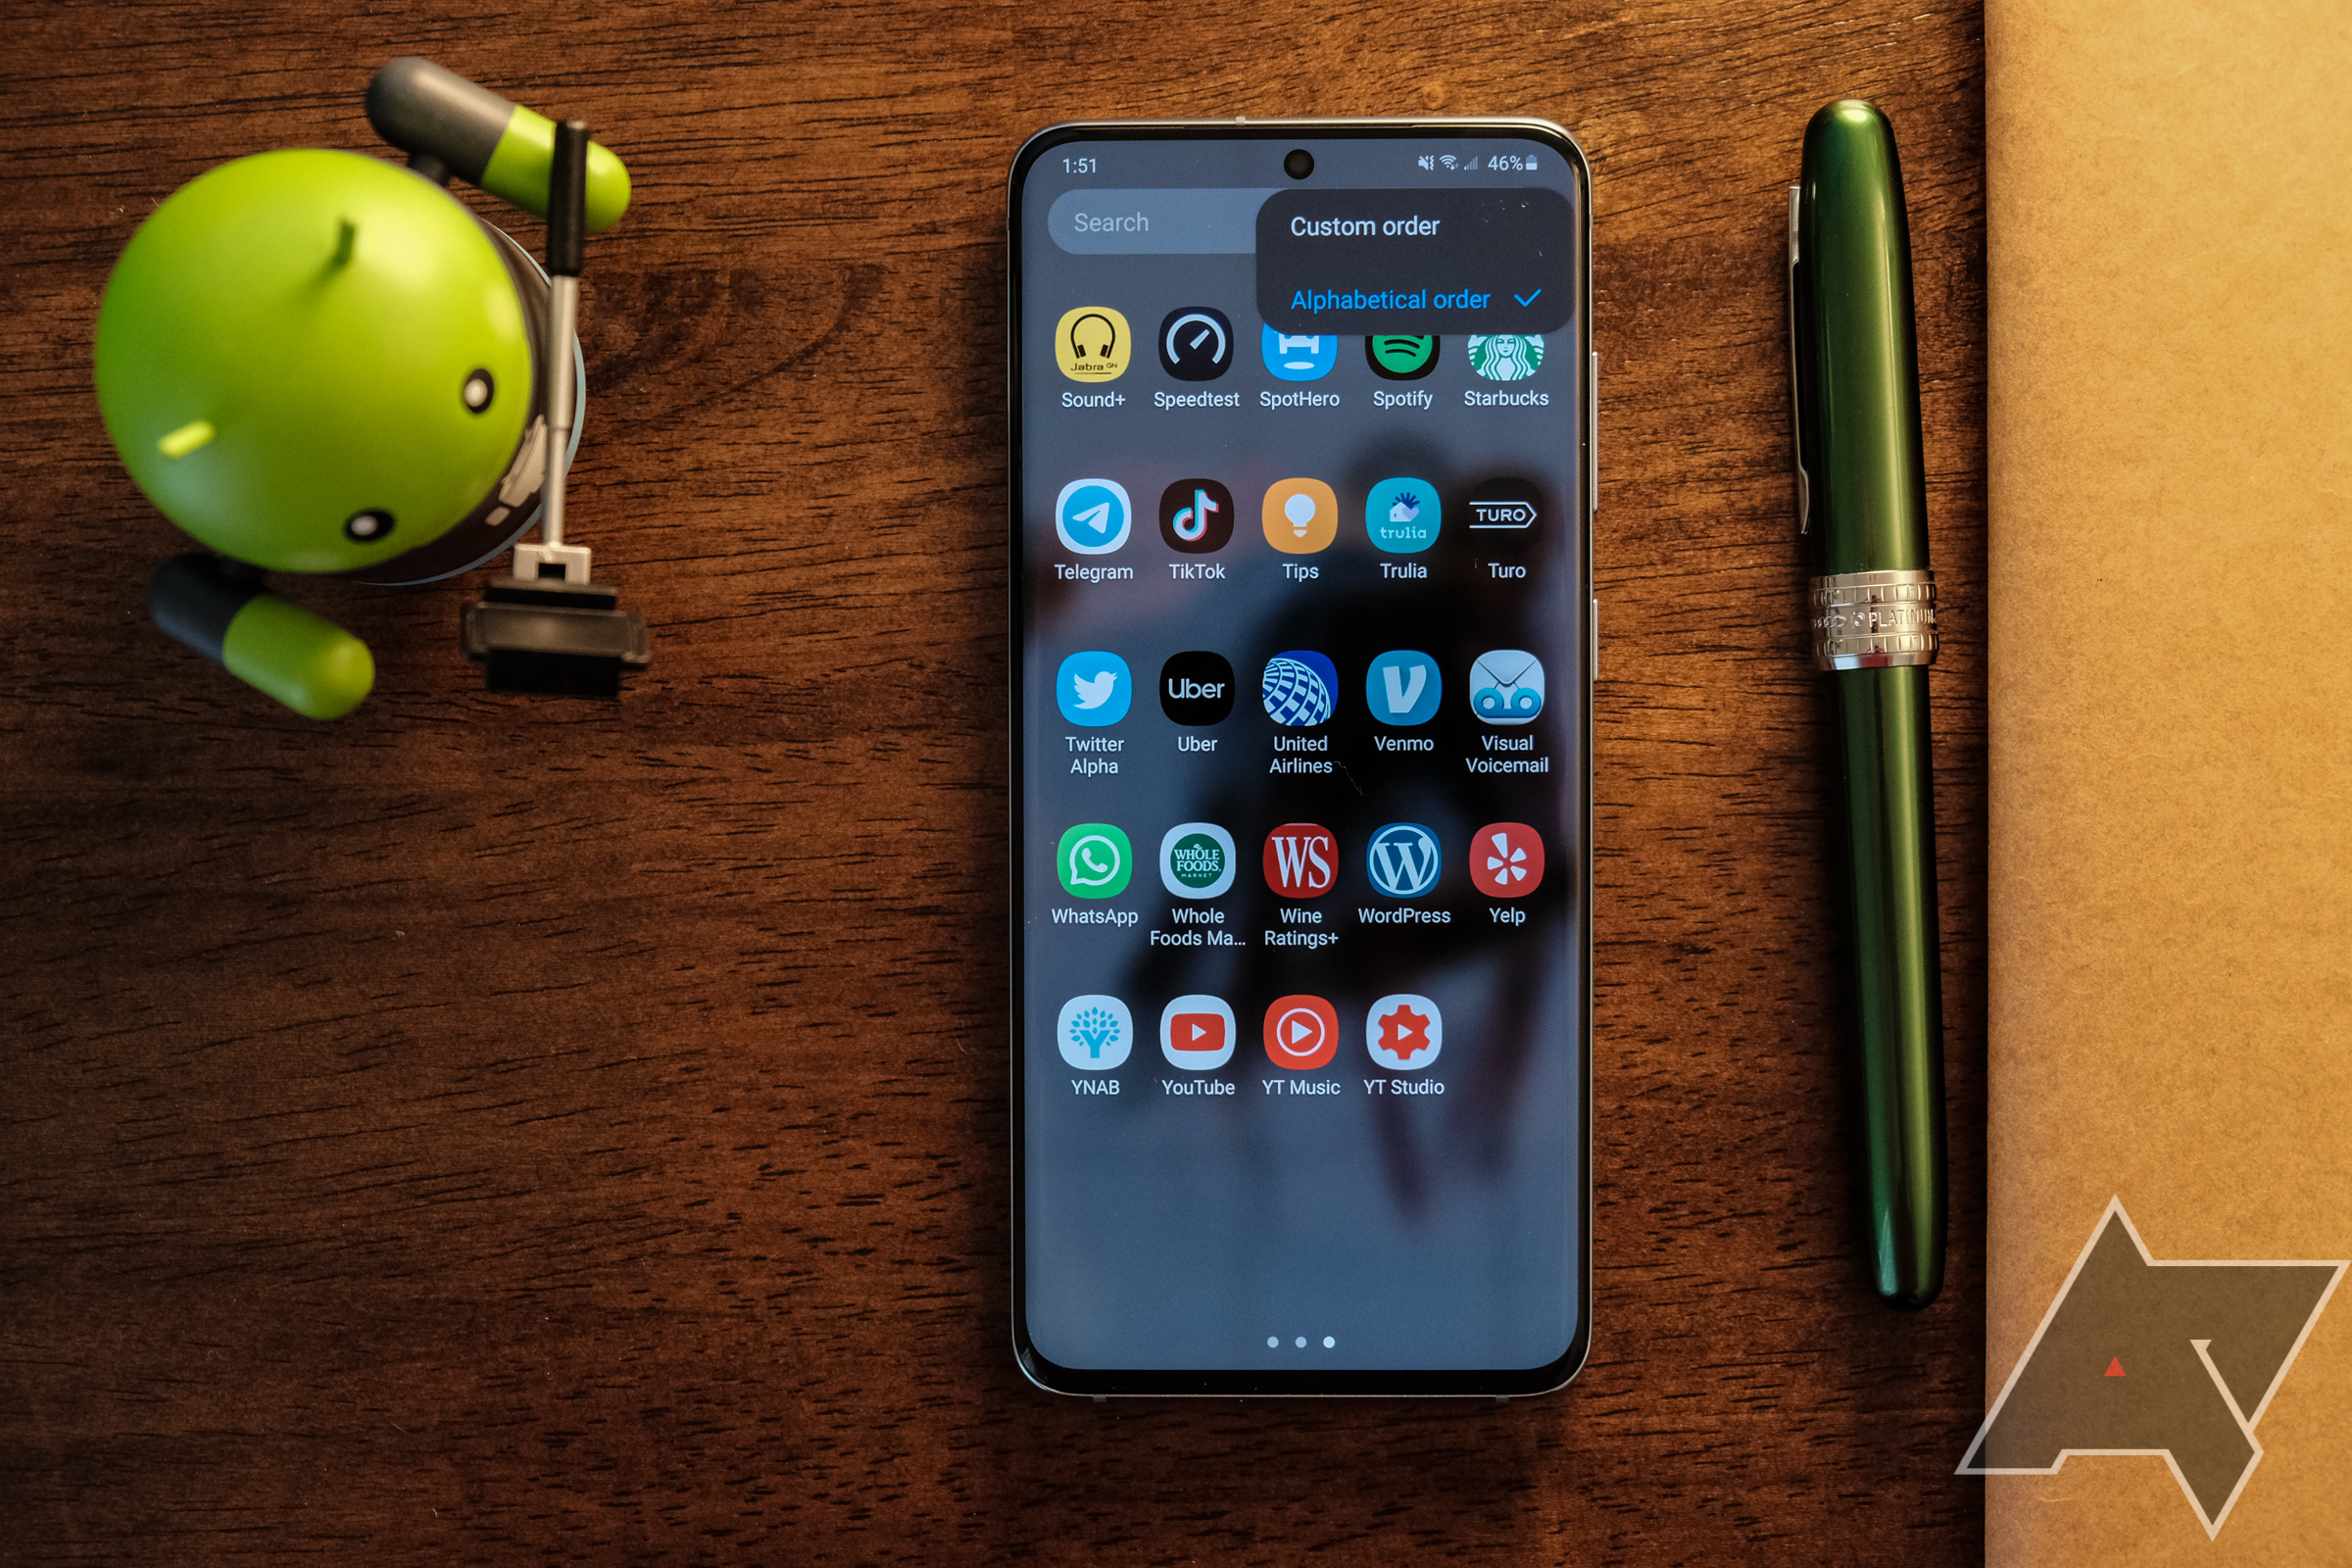 20 Of The Best Samsung Galaxy Smartphone Tricks You May Not Know